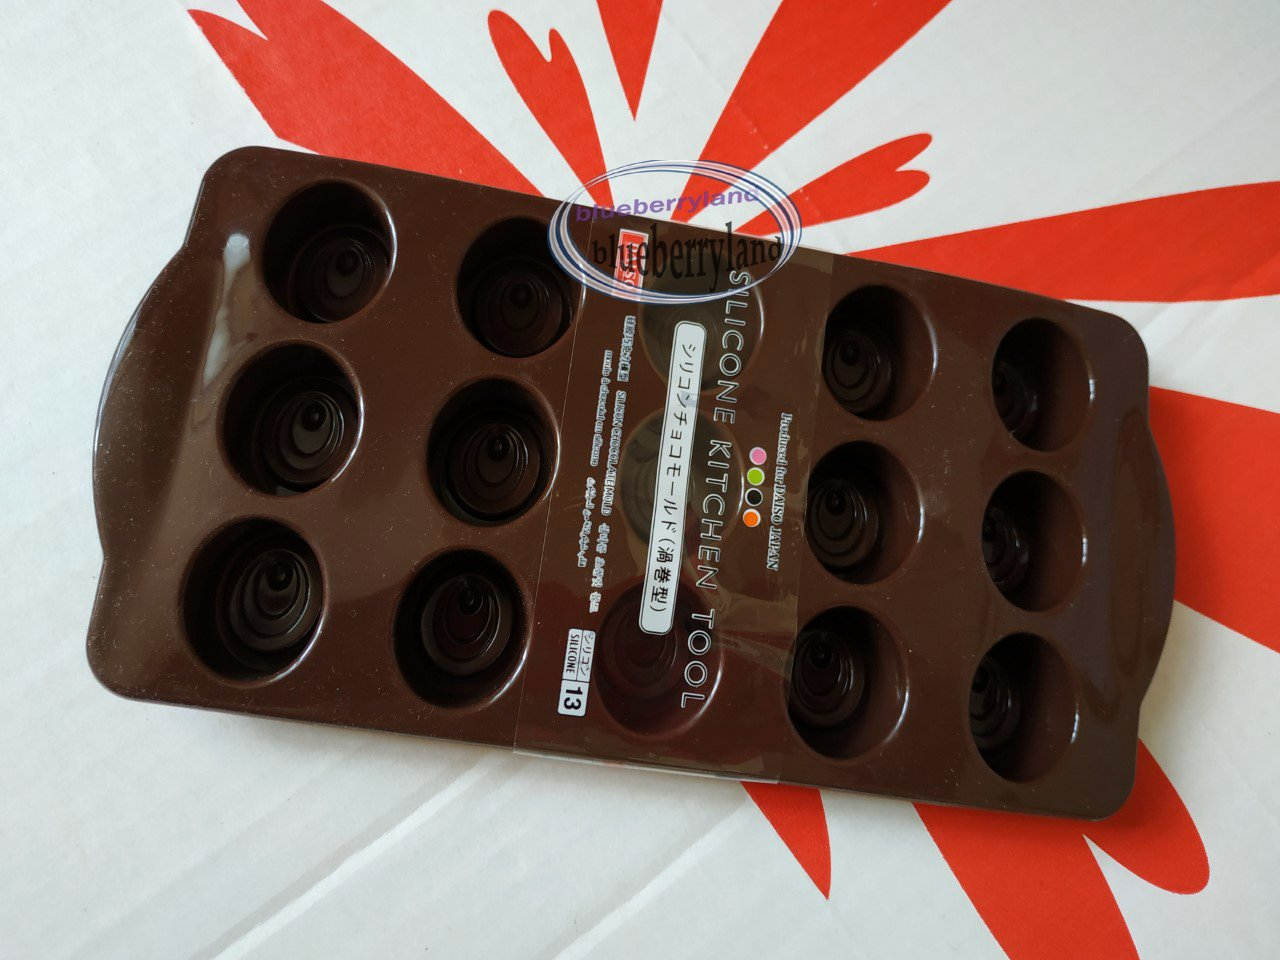 SILICONE Chocolate Mold Silicon Mould maker sweets choco moule snacks